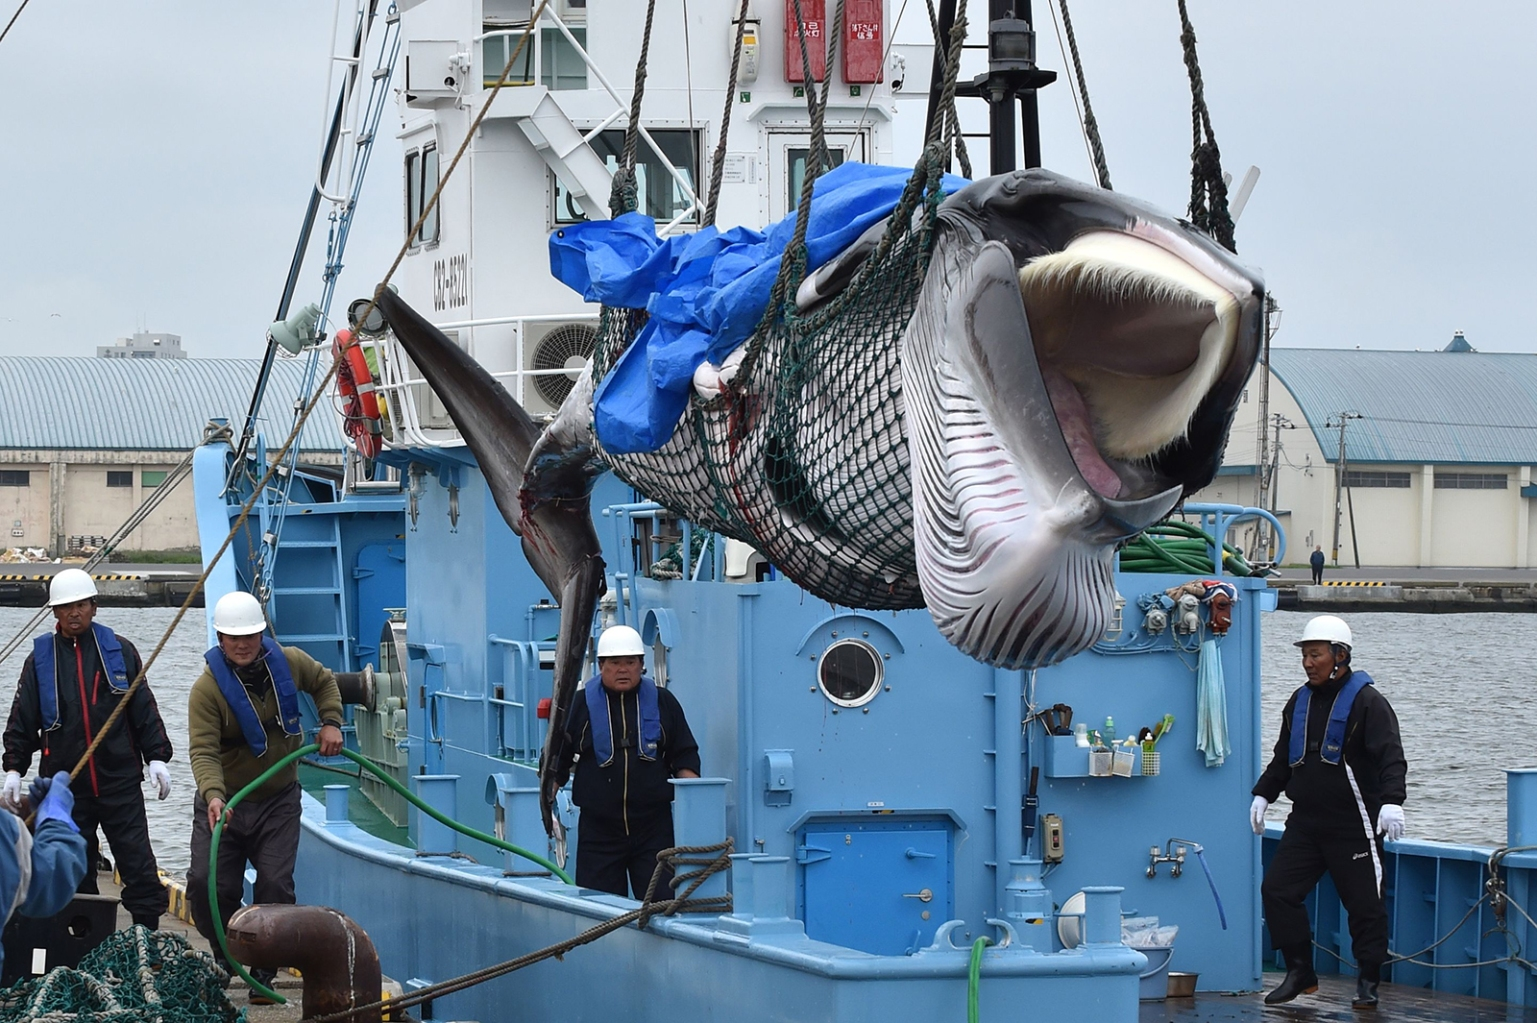 A captured minke whale is lifted by a crane at a port in Kushiro, Japan, on July 1, as Japan began its first commercial whale hunts in more than three decades. KAZUHIRO NOGI/AFP/Getty Images